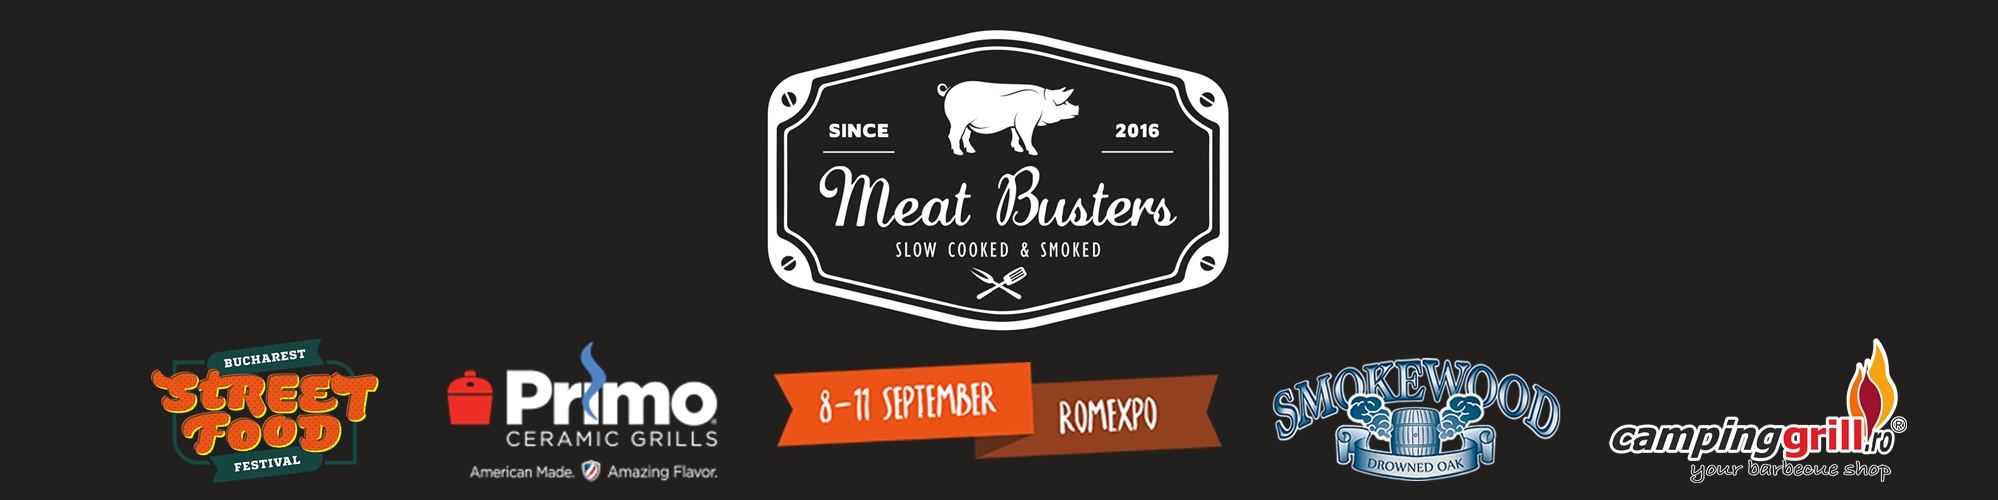 Meat-Busters_Street-Food-Festival_8-11-sept_2000x499